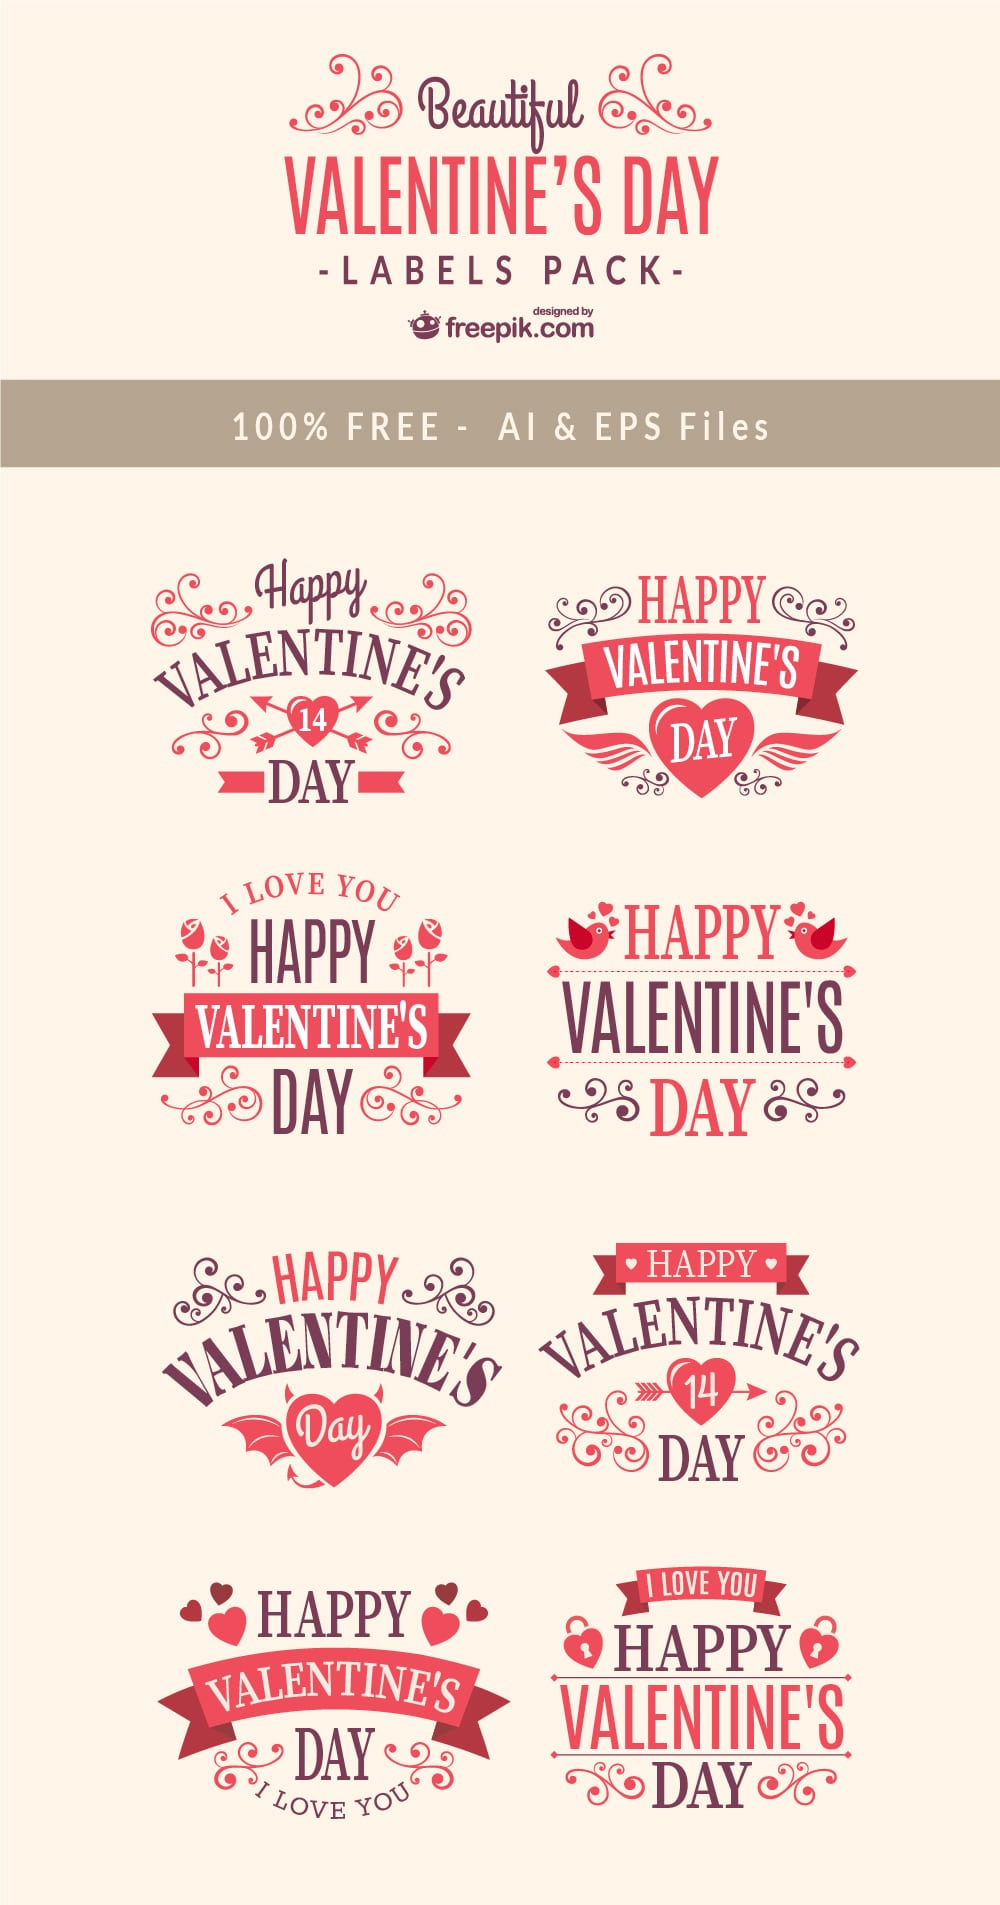 Free Valentines Day Label Designs